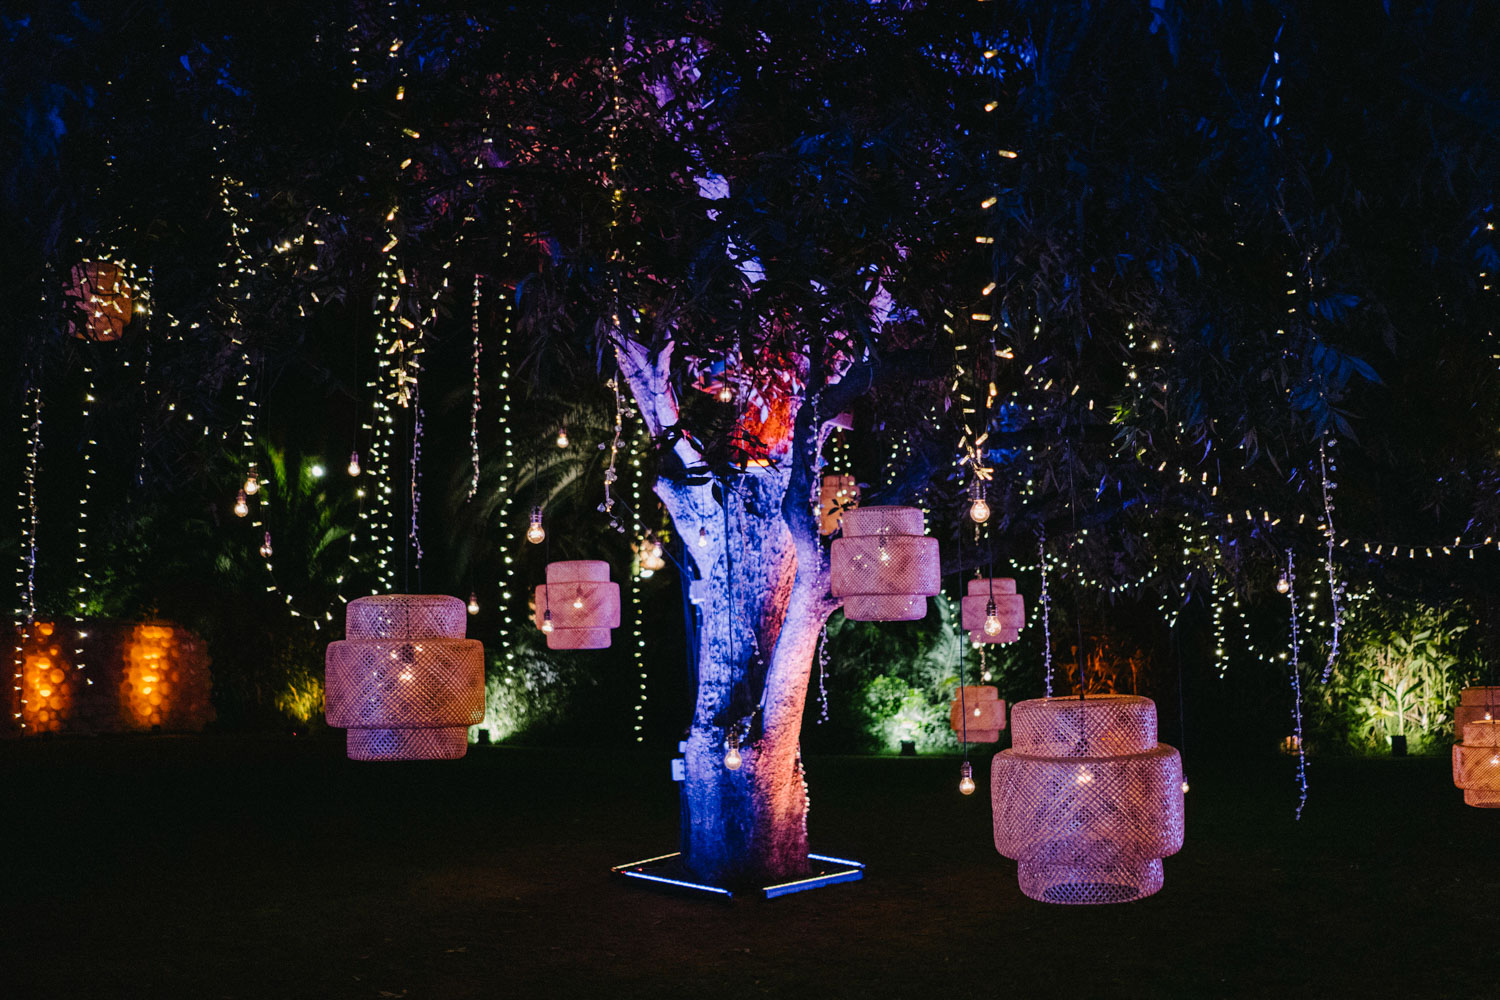 tree decoration with lamps and fairy lights